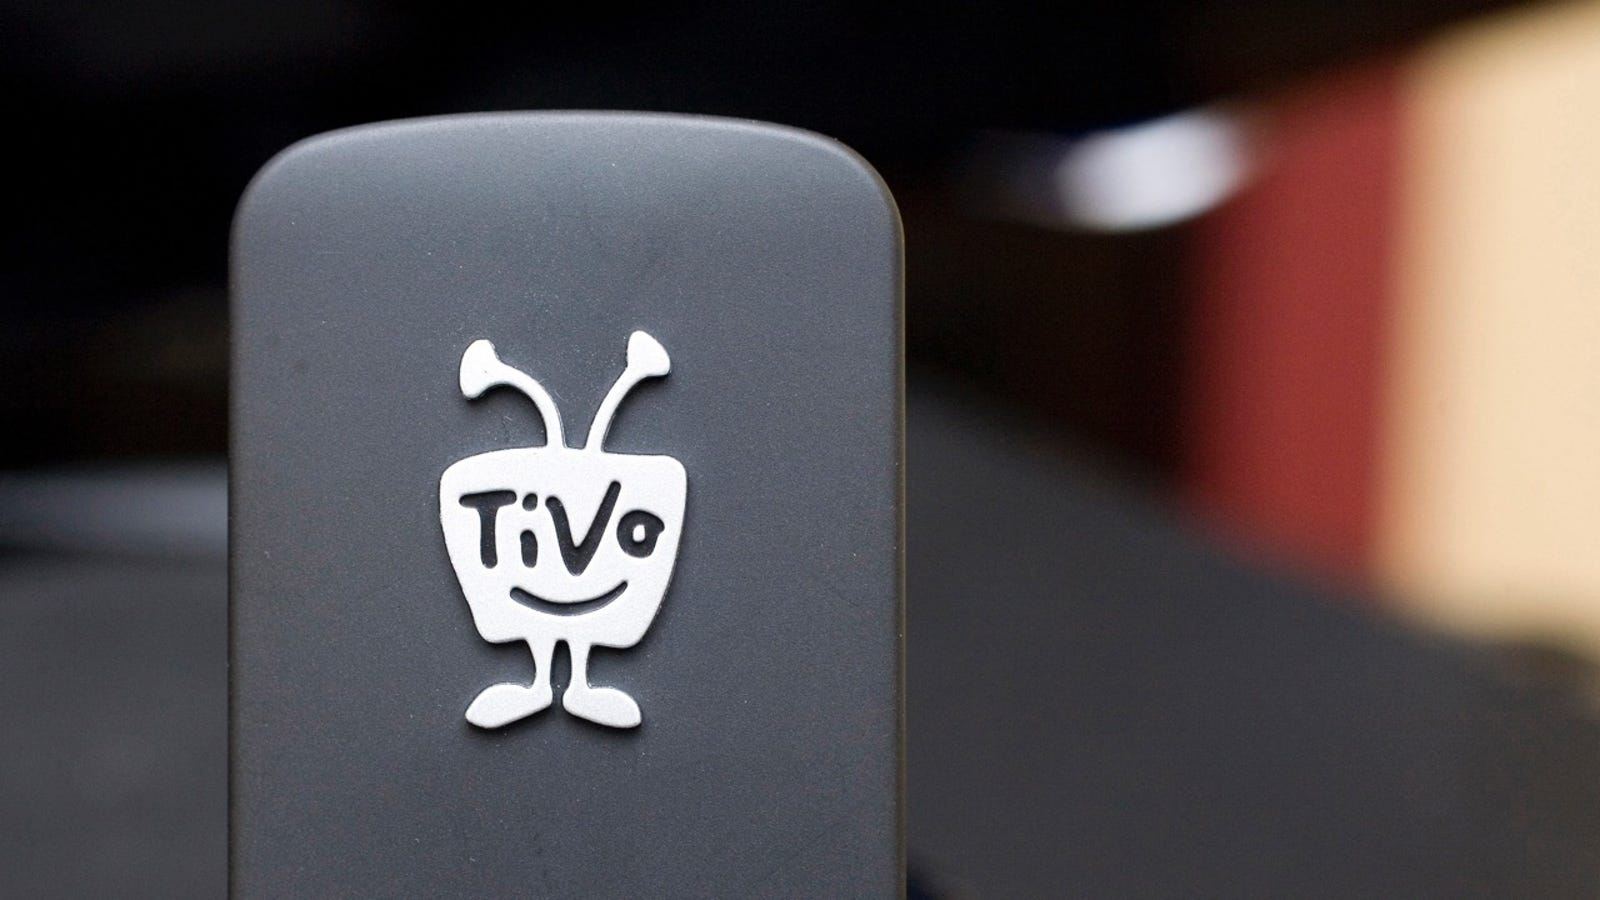 A Brief History of Trump and TiVo, Which He Called 'One of the Great Inventions of All Time'